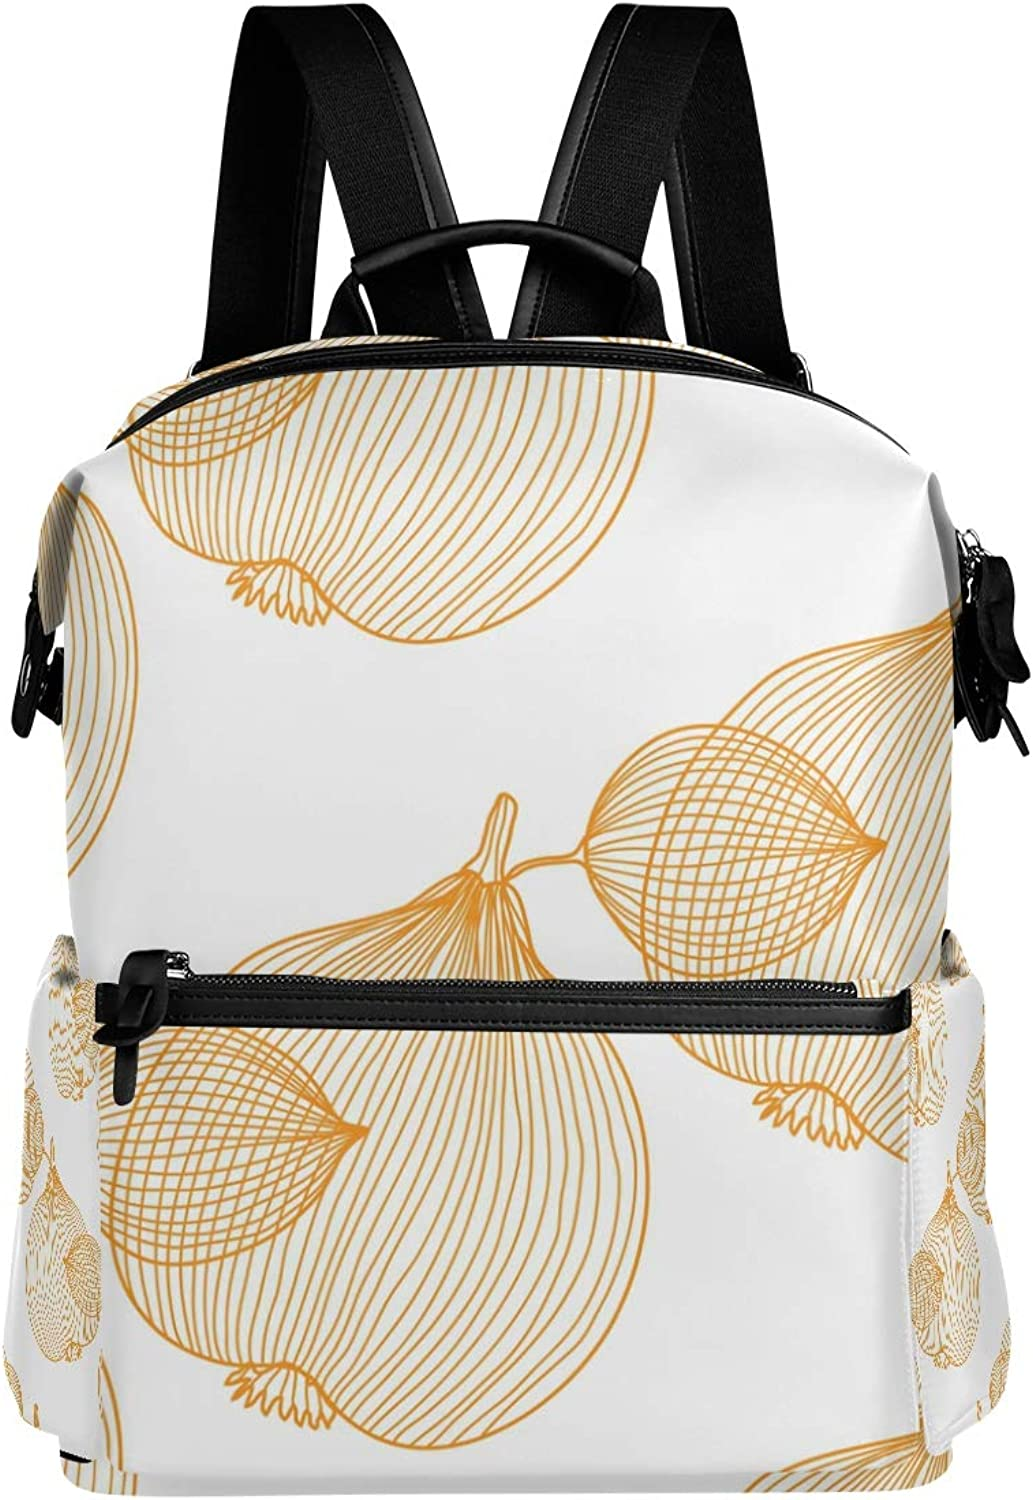 MONTOJ Yellow Hollow Out Onion Leather Travel Bag Campus Backpack